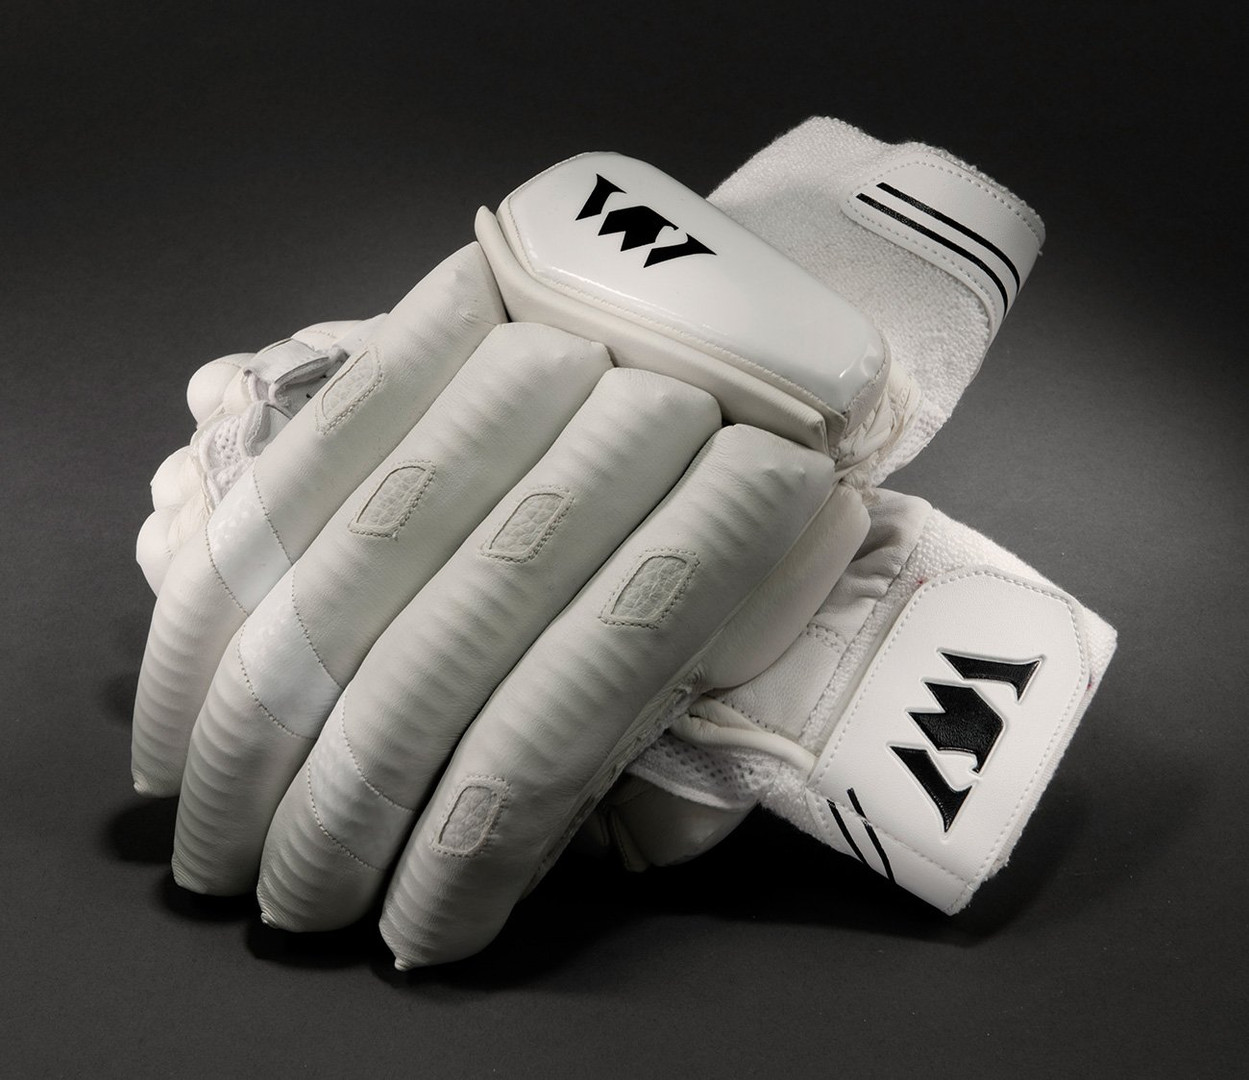 batting-gloves-4.jpg